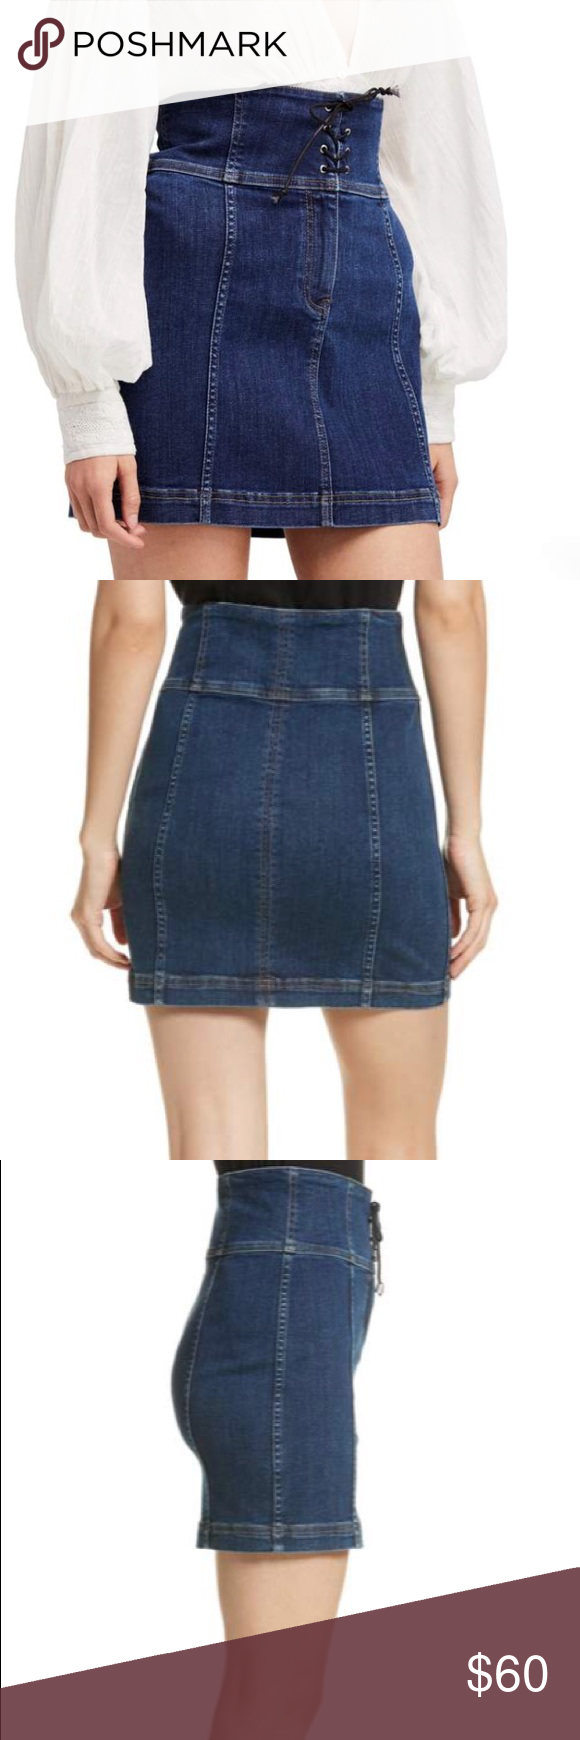 fd931639bc5 Free People Modern Femme Corset Denim Skirt NWT. No trades. Those  Victorians knew a